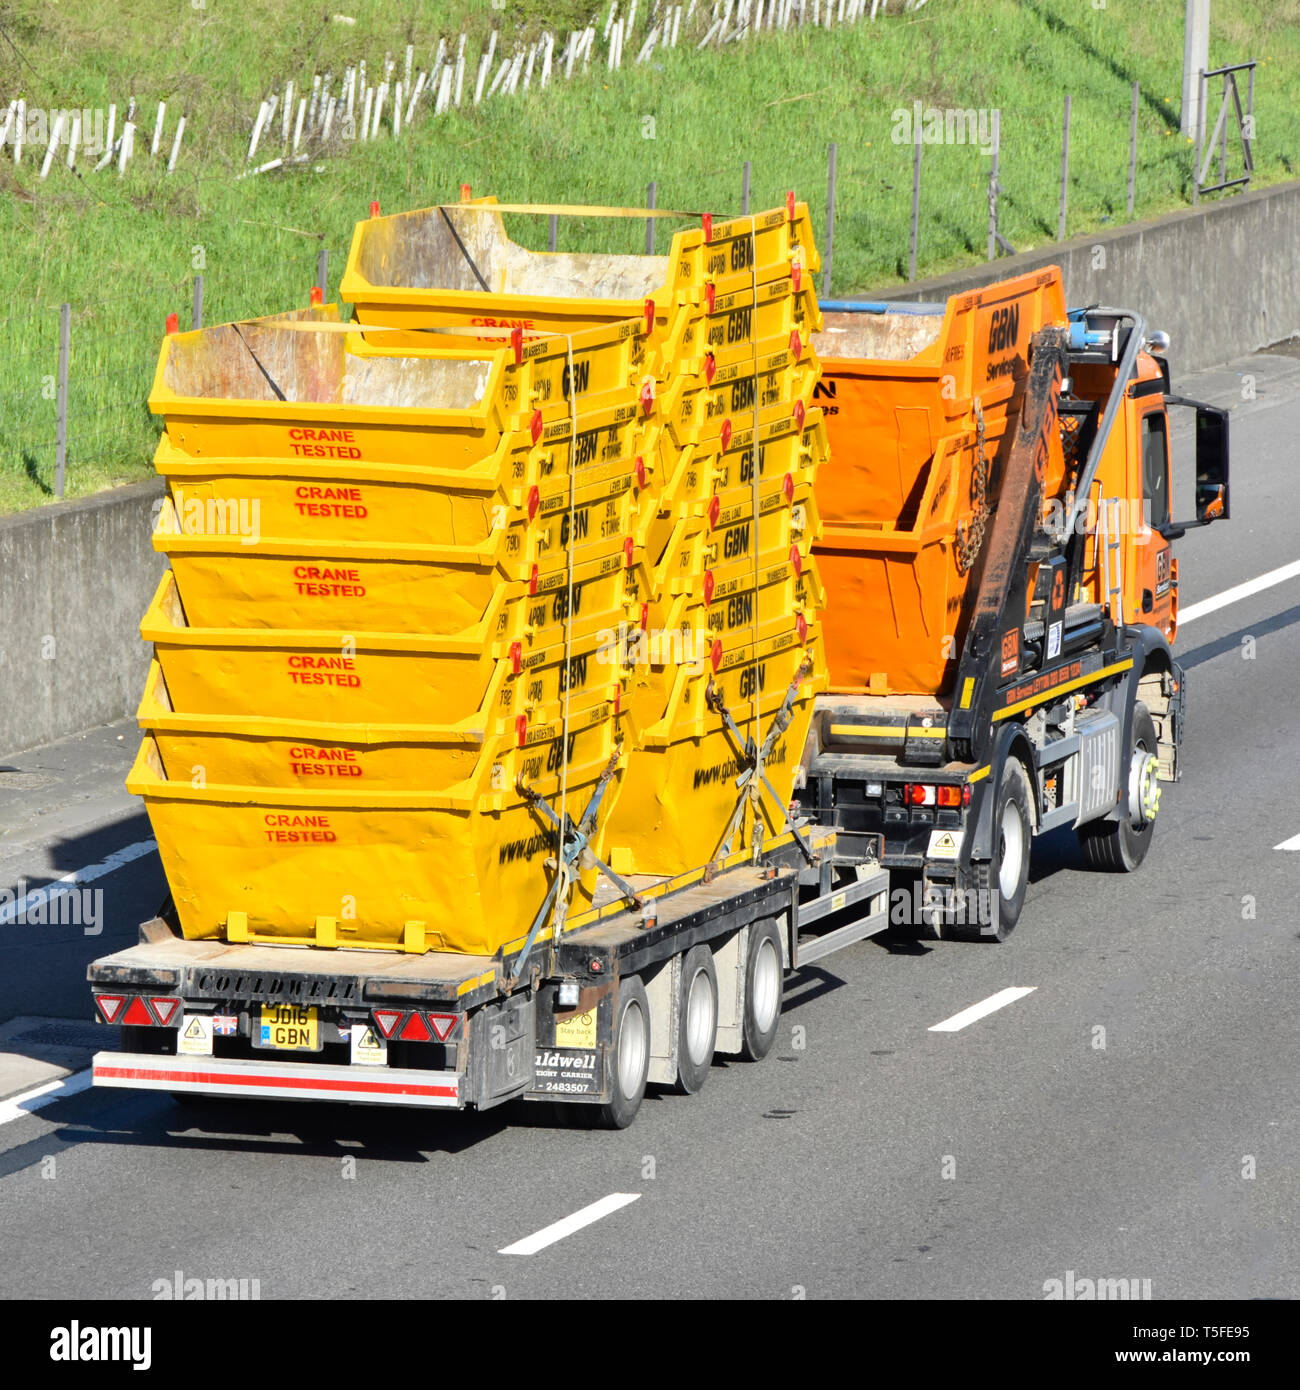 Skip lorry truck towing a trailer loaded with delivery of thirteen empty yellow industrial steel rubbish skip bins marked as crane tested uk motorway - Stock Image